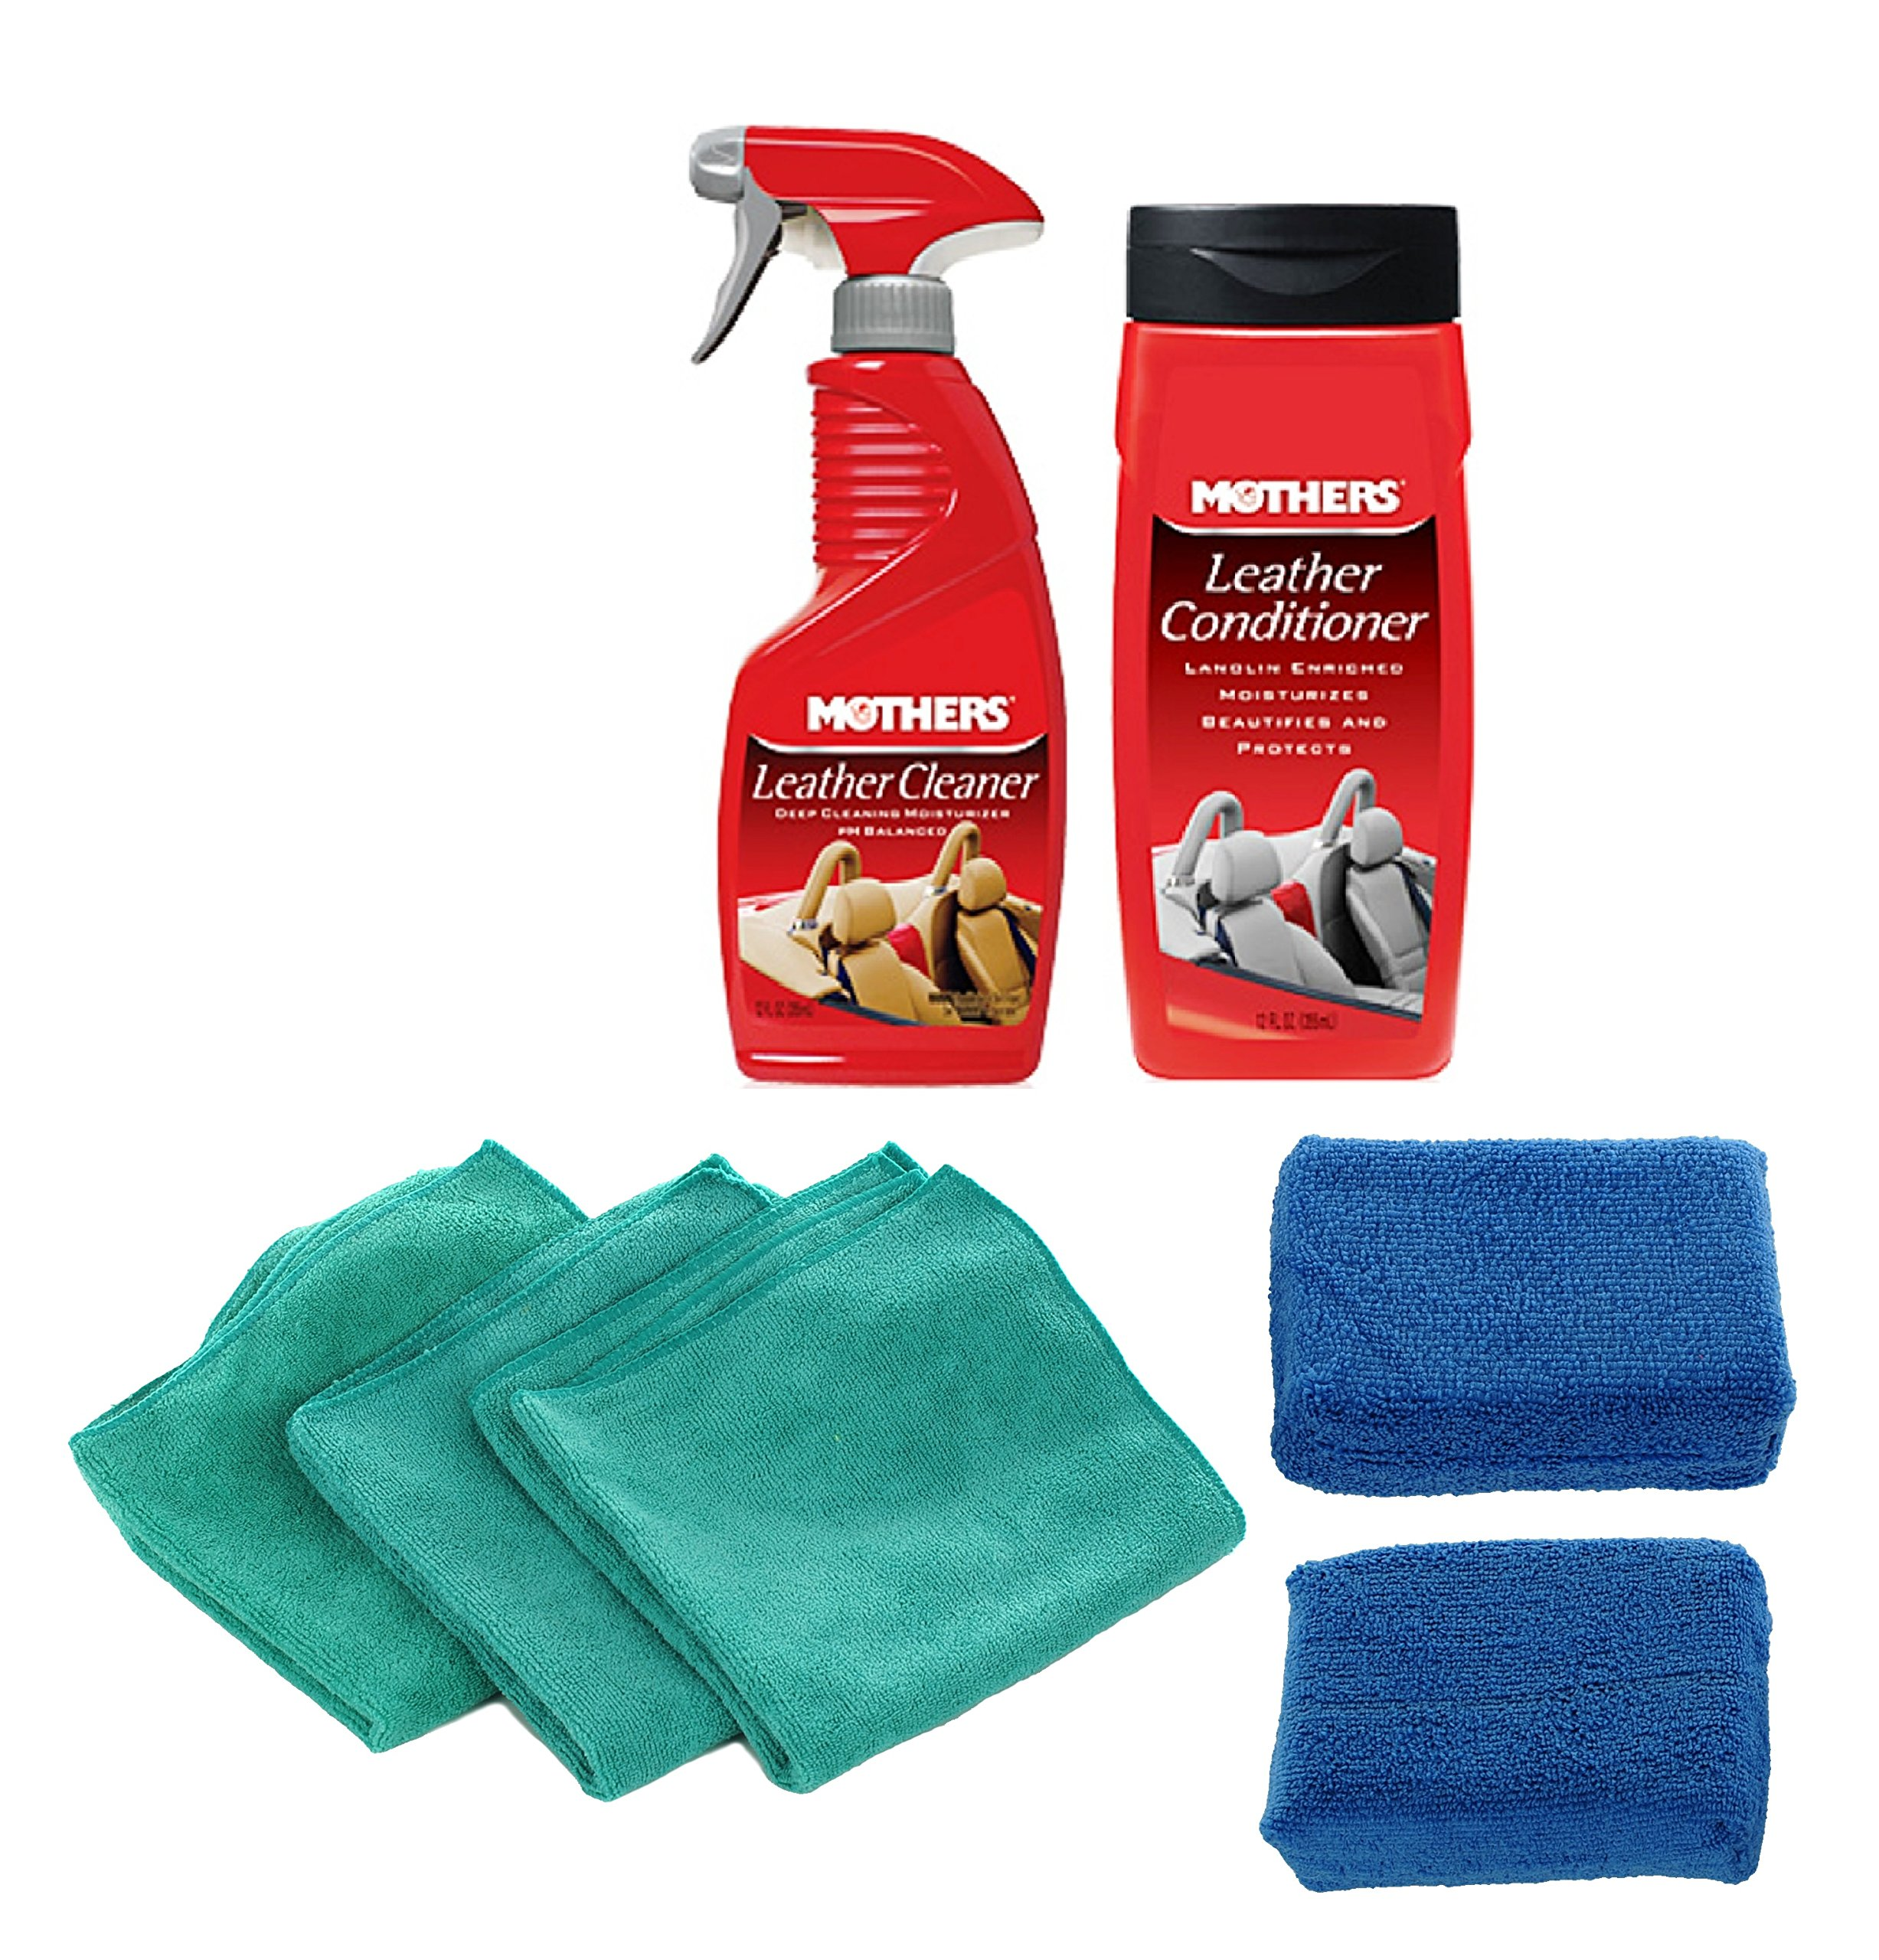 Leather Care Cleaning Kit - Mothers